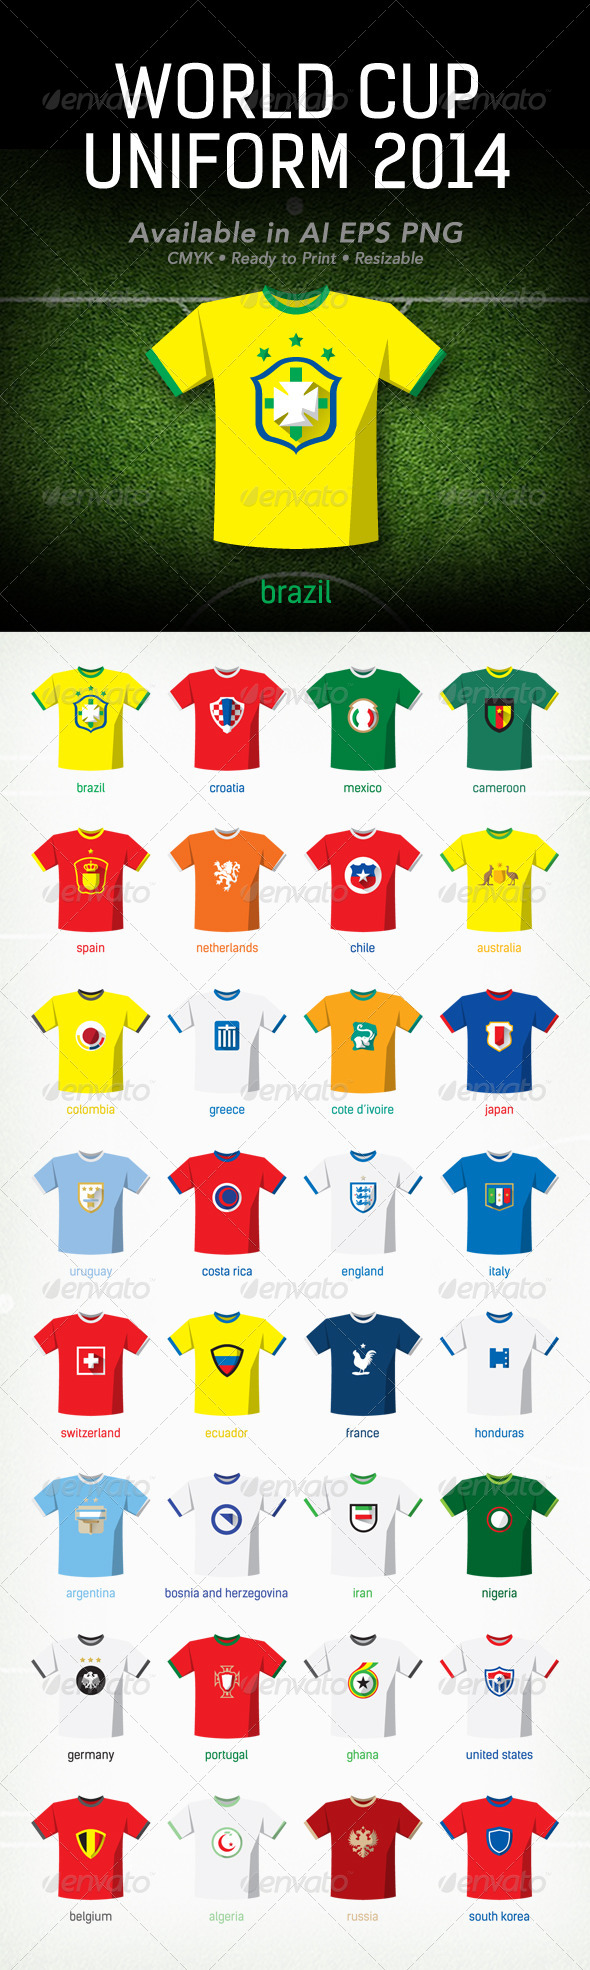 World Cup 2014 Uniform